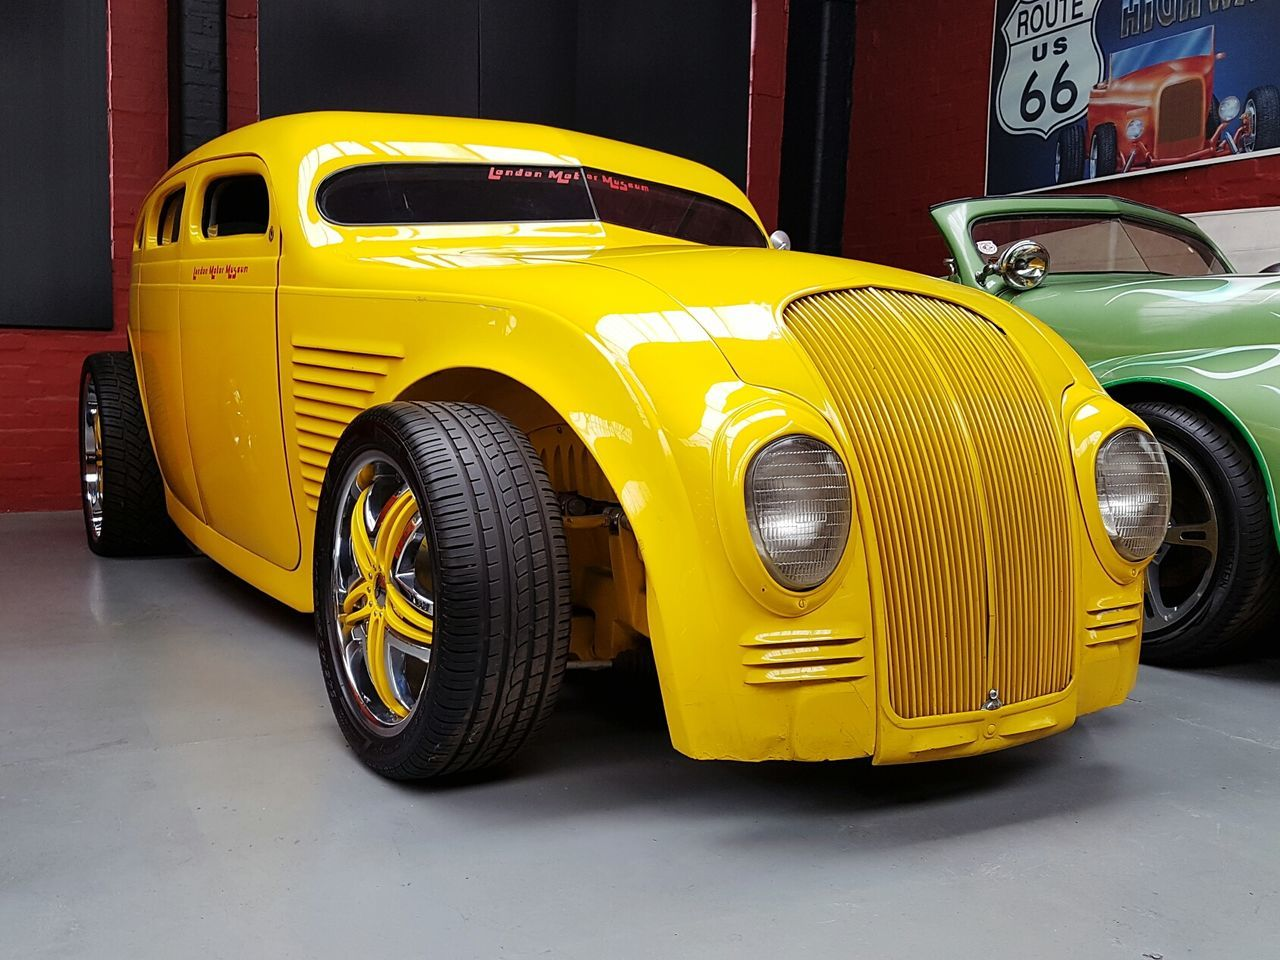 Hot Rod Car Yellow Taxi Taxi Transportation Yellow Land Vehicle No People Outdoors Close-up Day Collector's Car Old-fashioned Driving Classiccarspotting Classiccars Auto Racing Control Panel Luxury Vehicle Interior